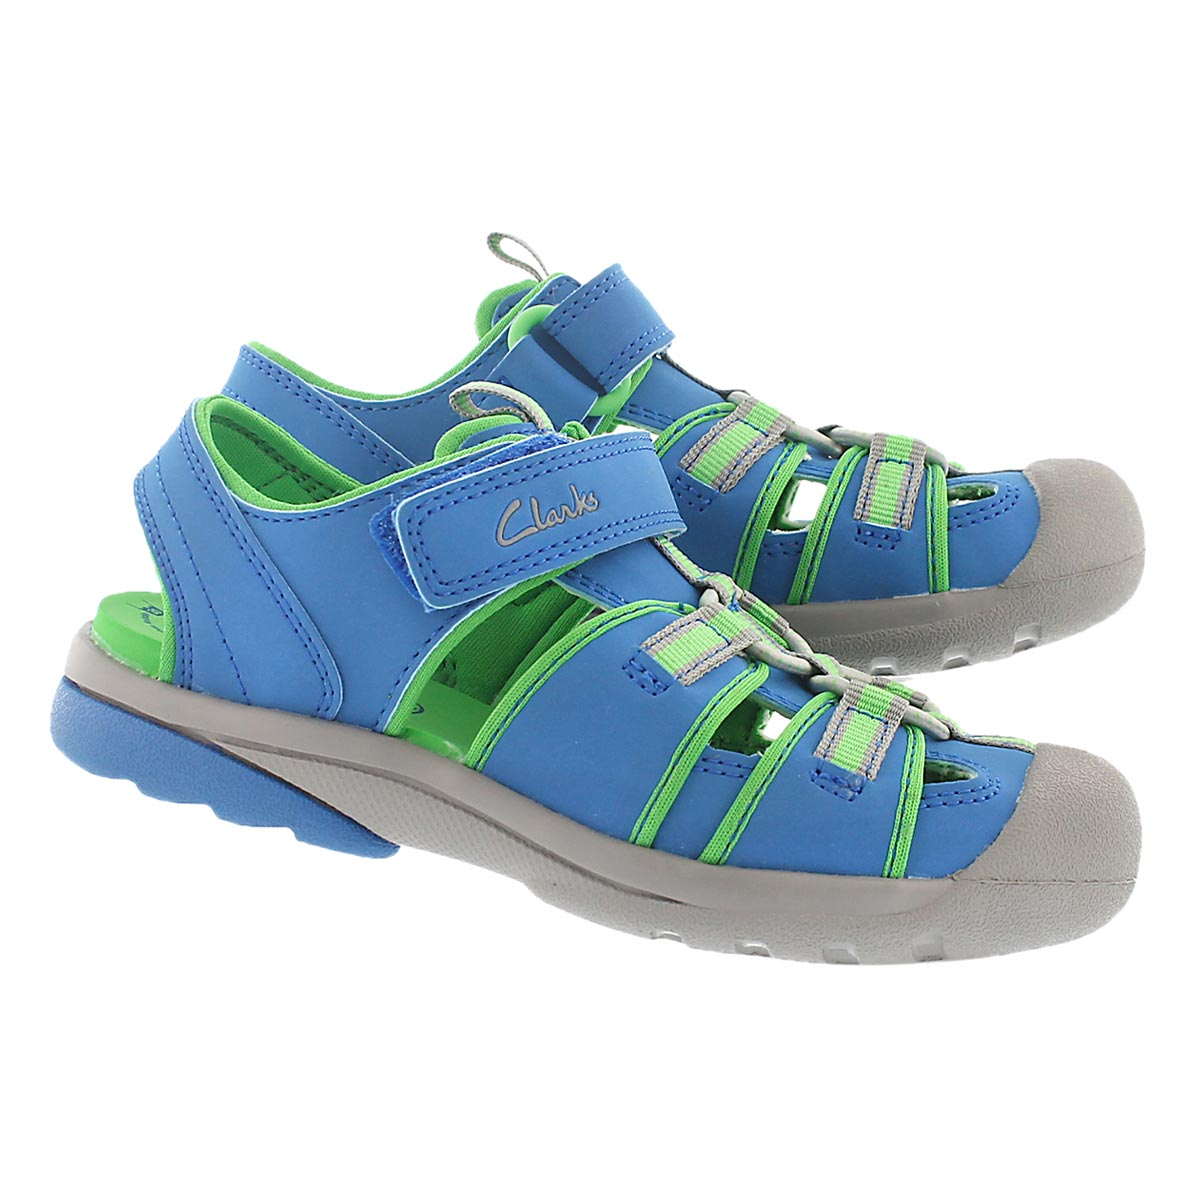 Kds Beach Mate blue/grn fisherman sandal